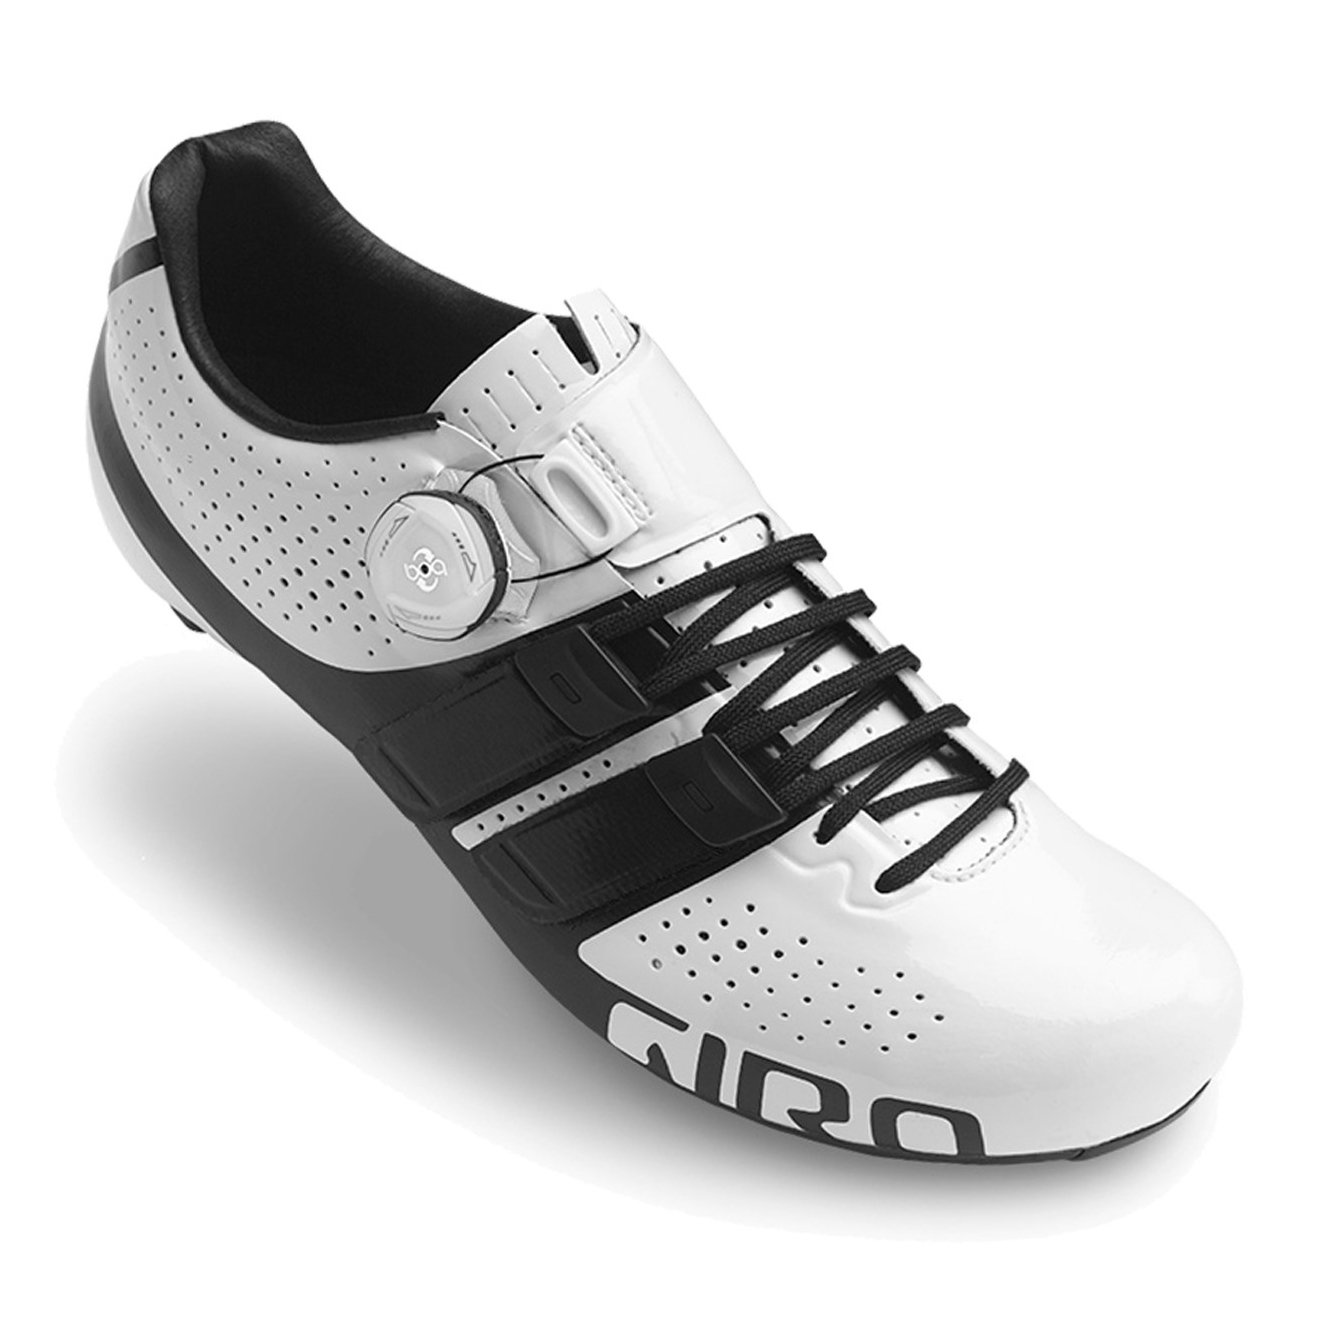 GIRO(ジロ) FACTOR Techlace Road Cycling Shoes - White/Black [並行輸入品] 42 EUR [27cm]  B07C9S5292